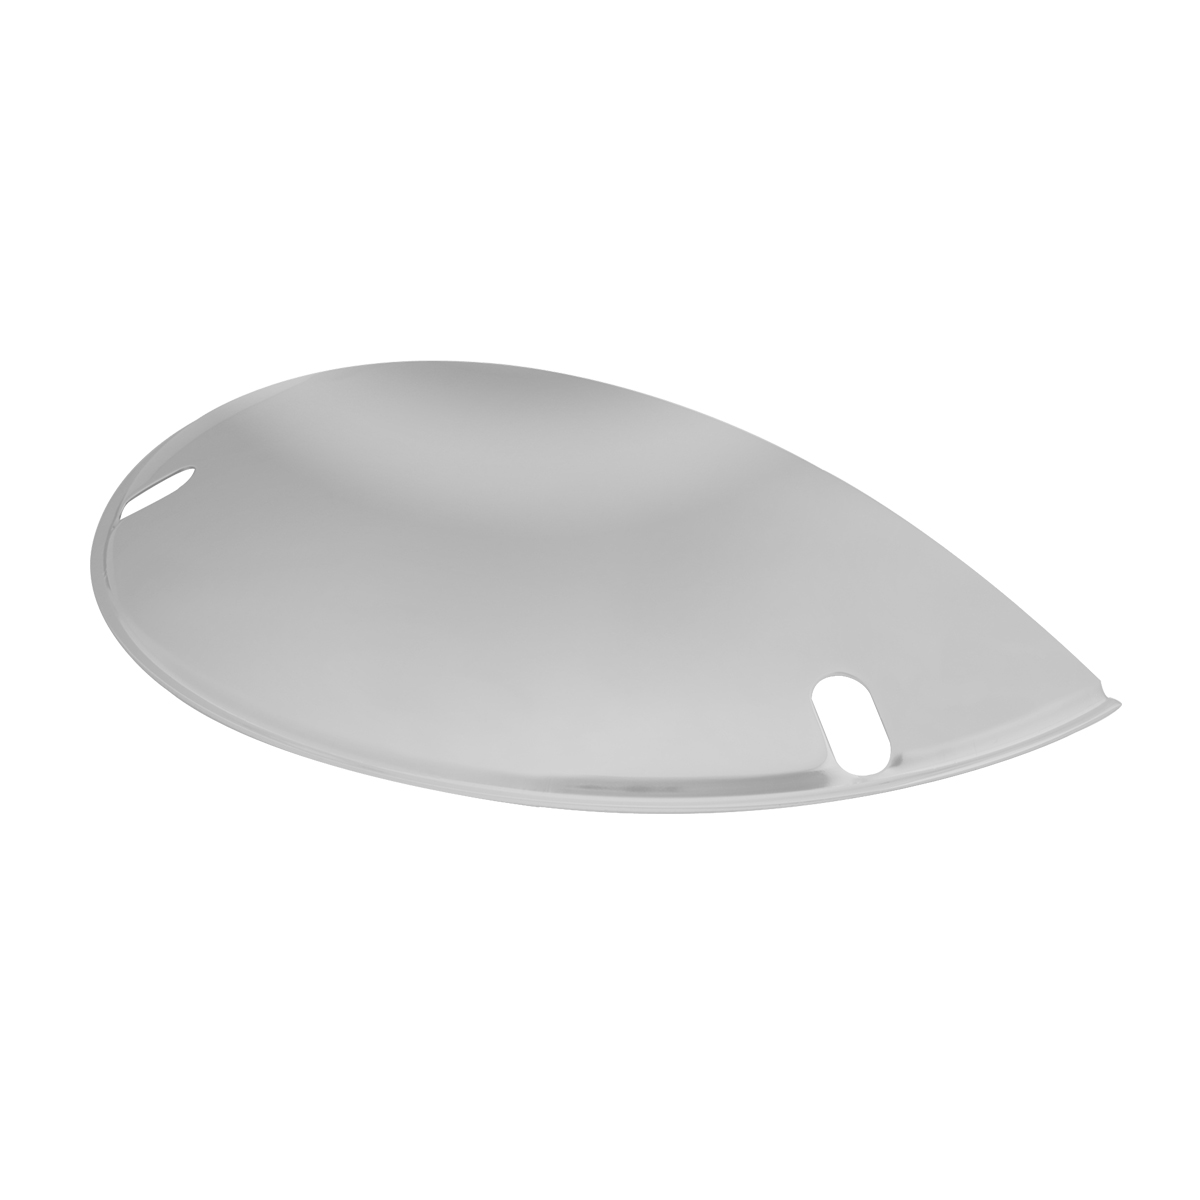 #70520/#70530 Chrome Plated Steel Half Moon Headlight Shield